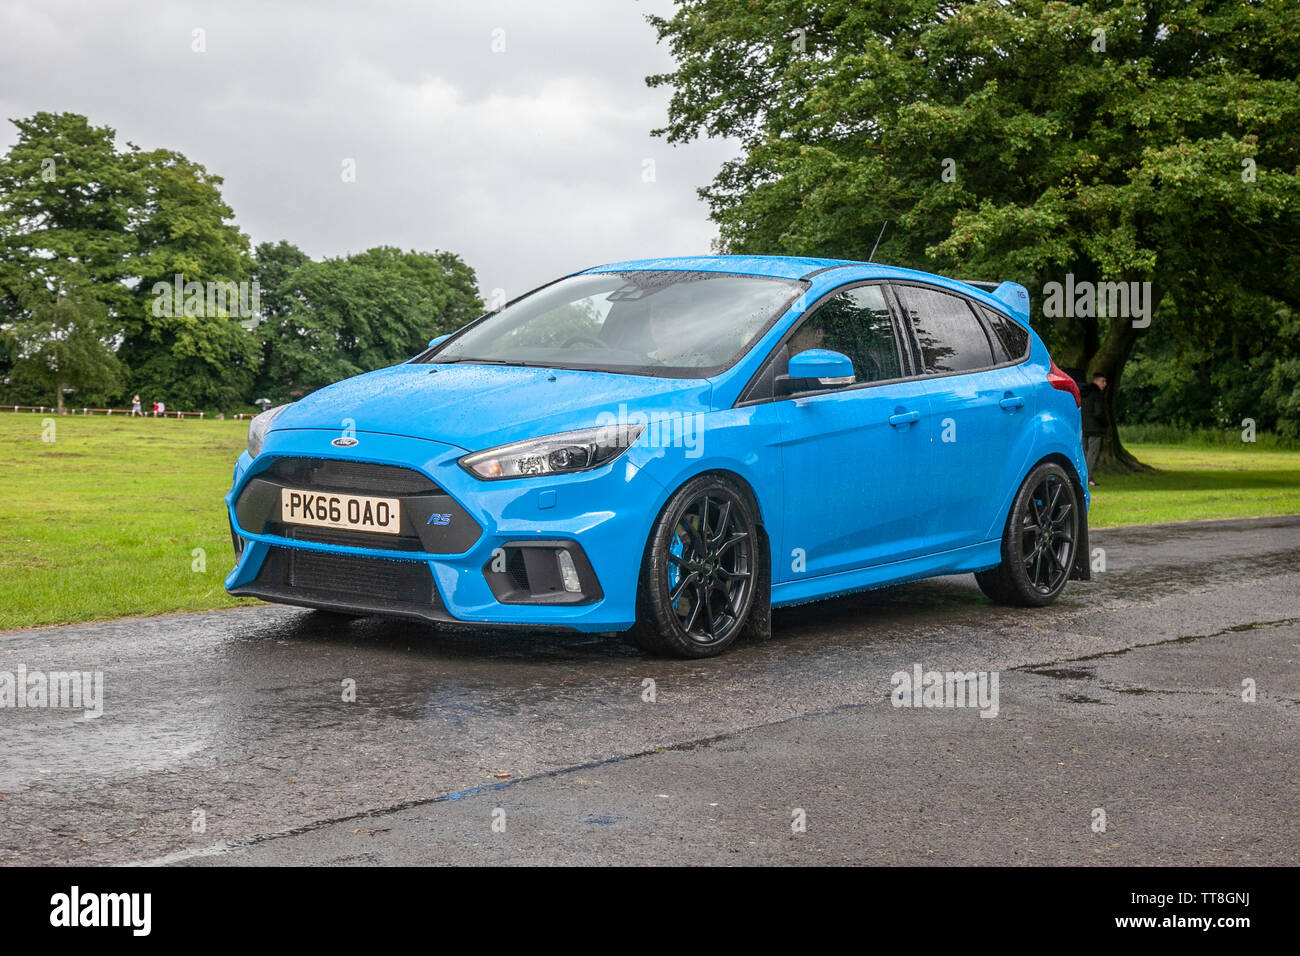 Blue Ford Focus Rs High Resolution Stock Photography And Images Alamy